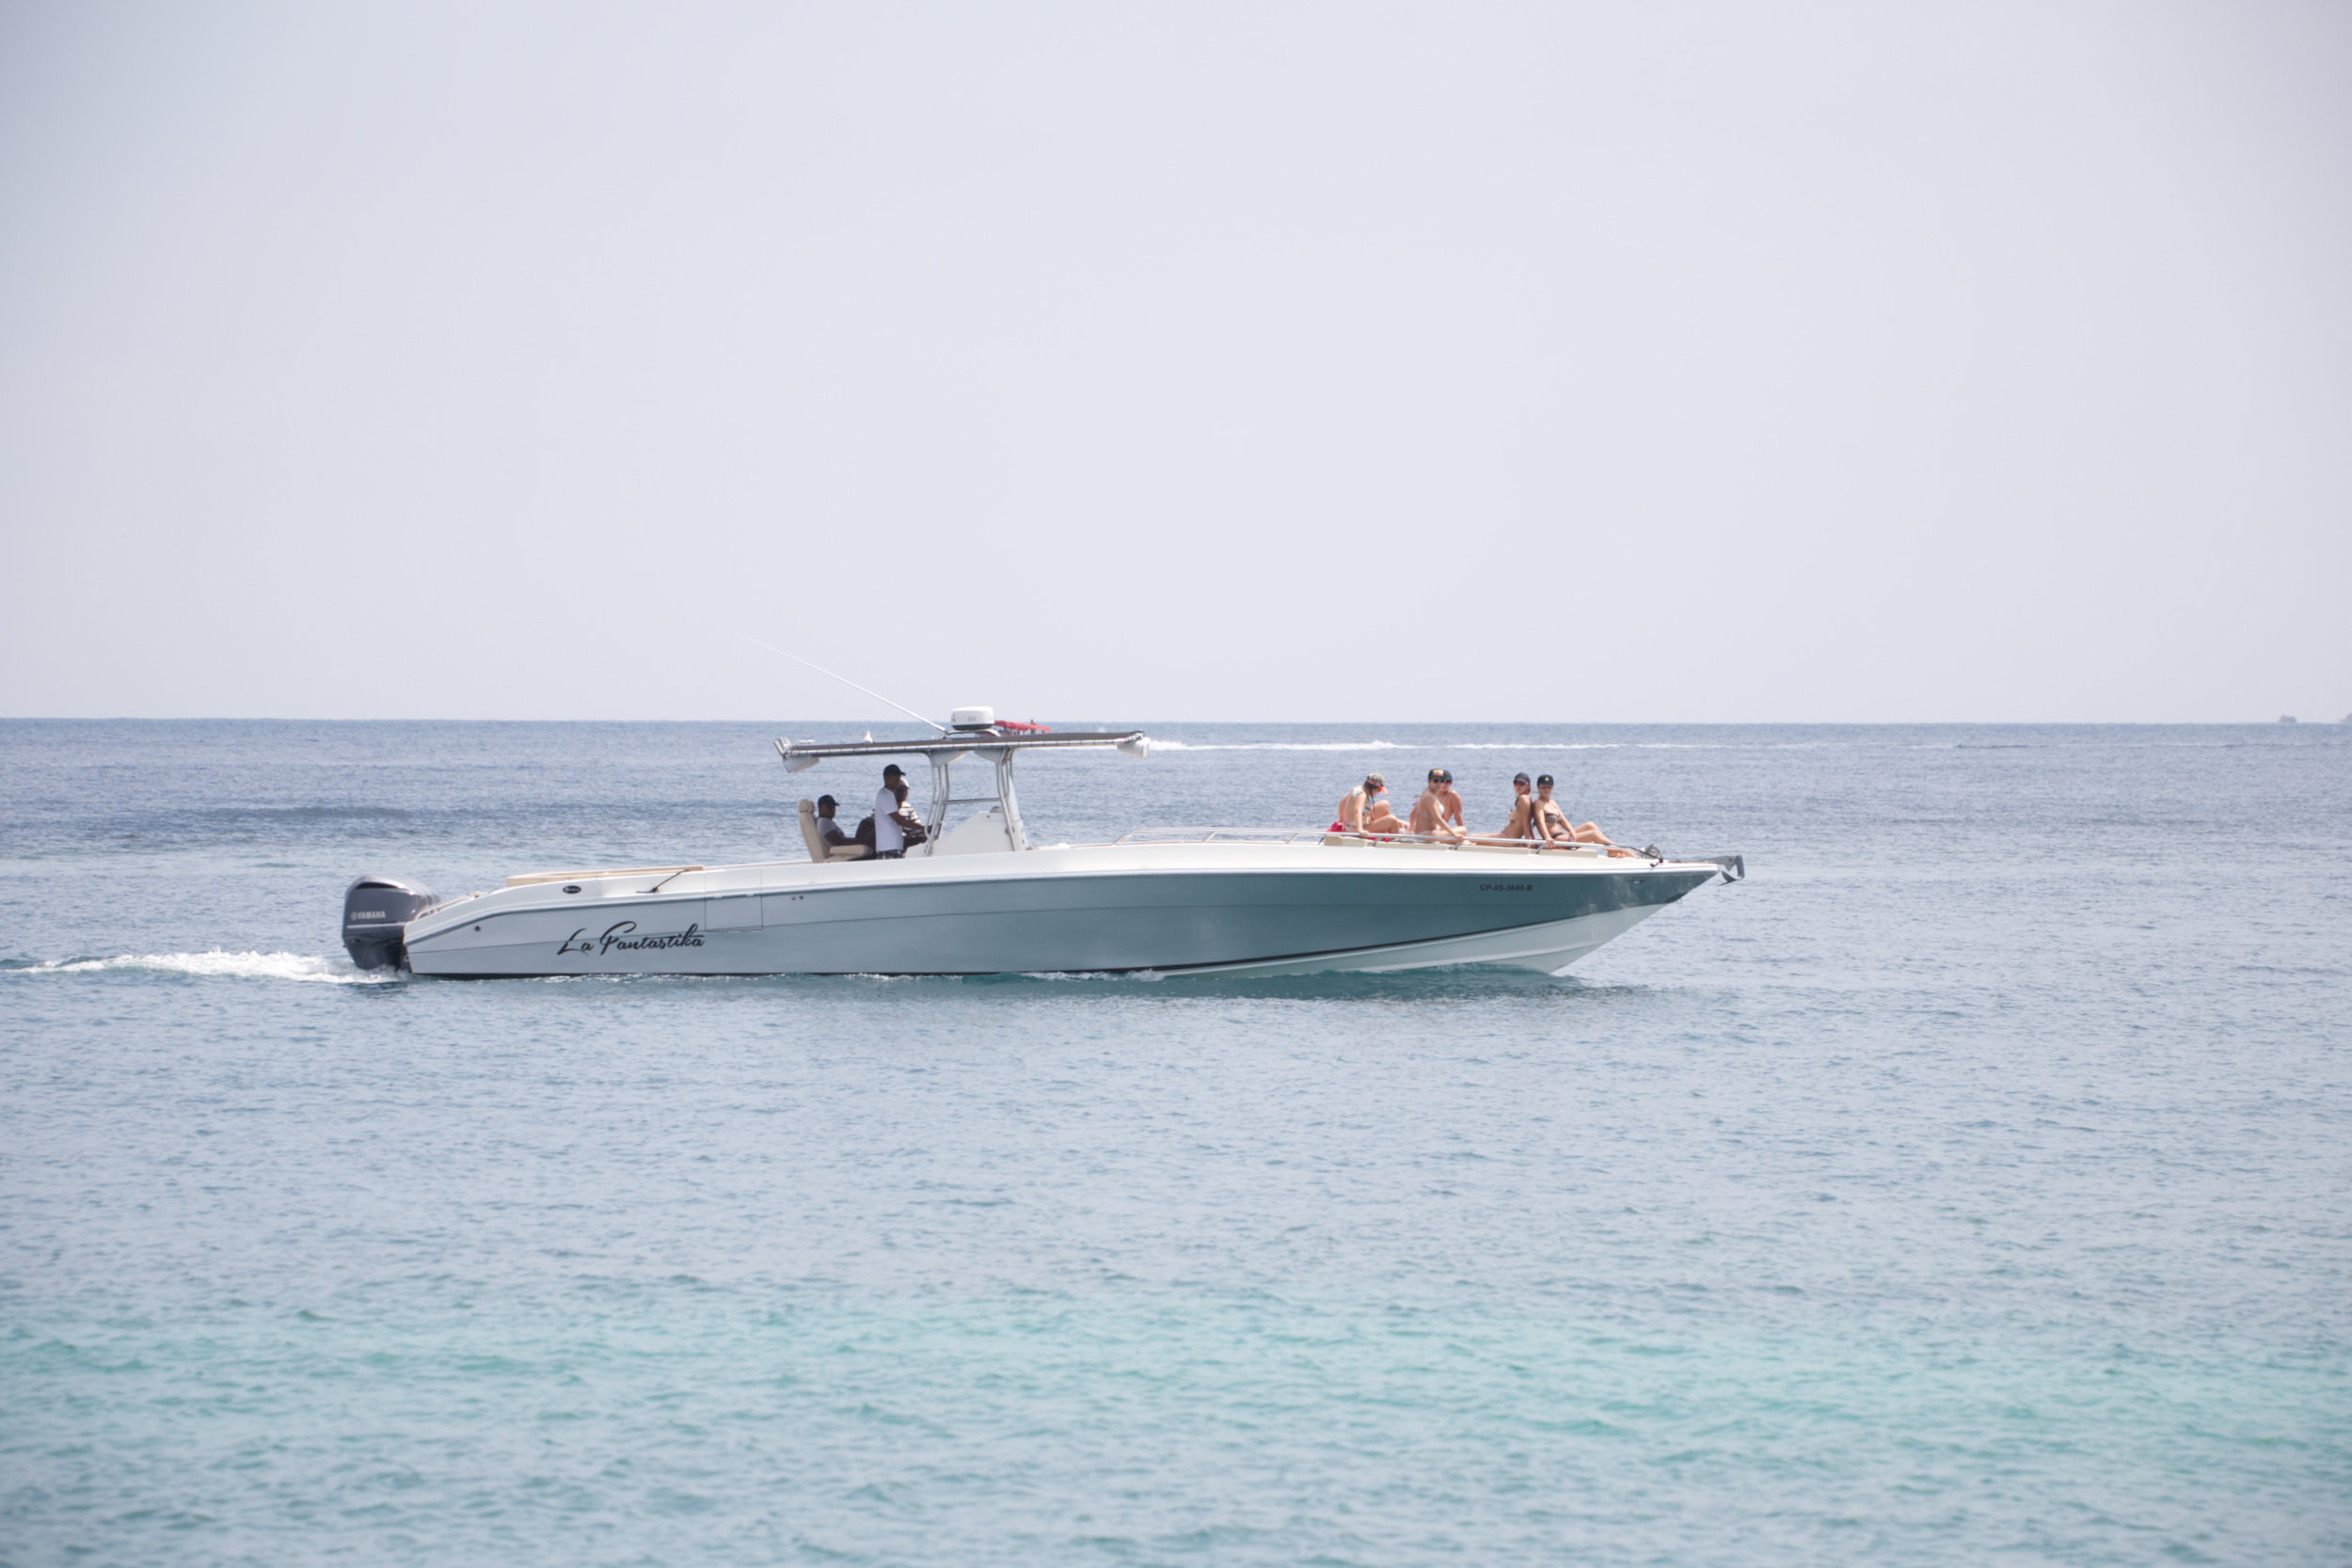 Our Boat to the Islands